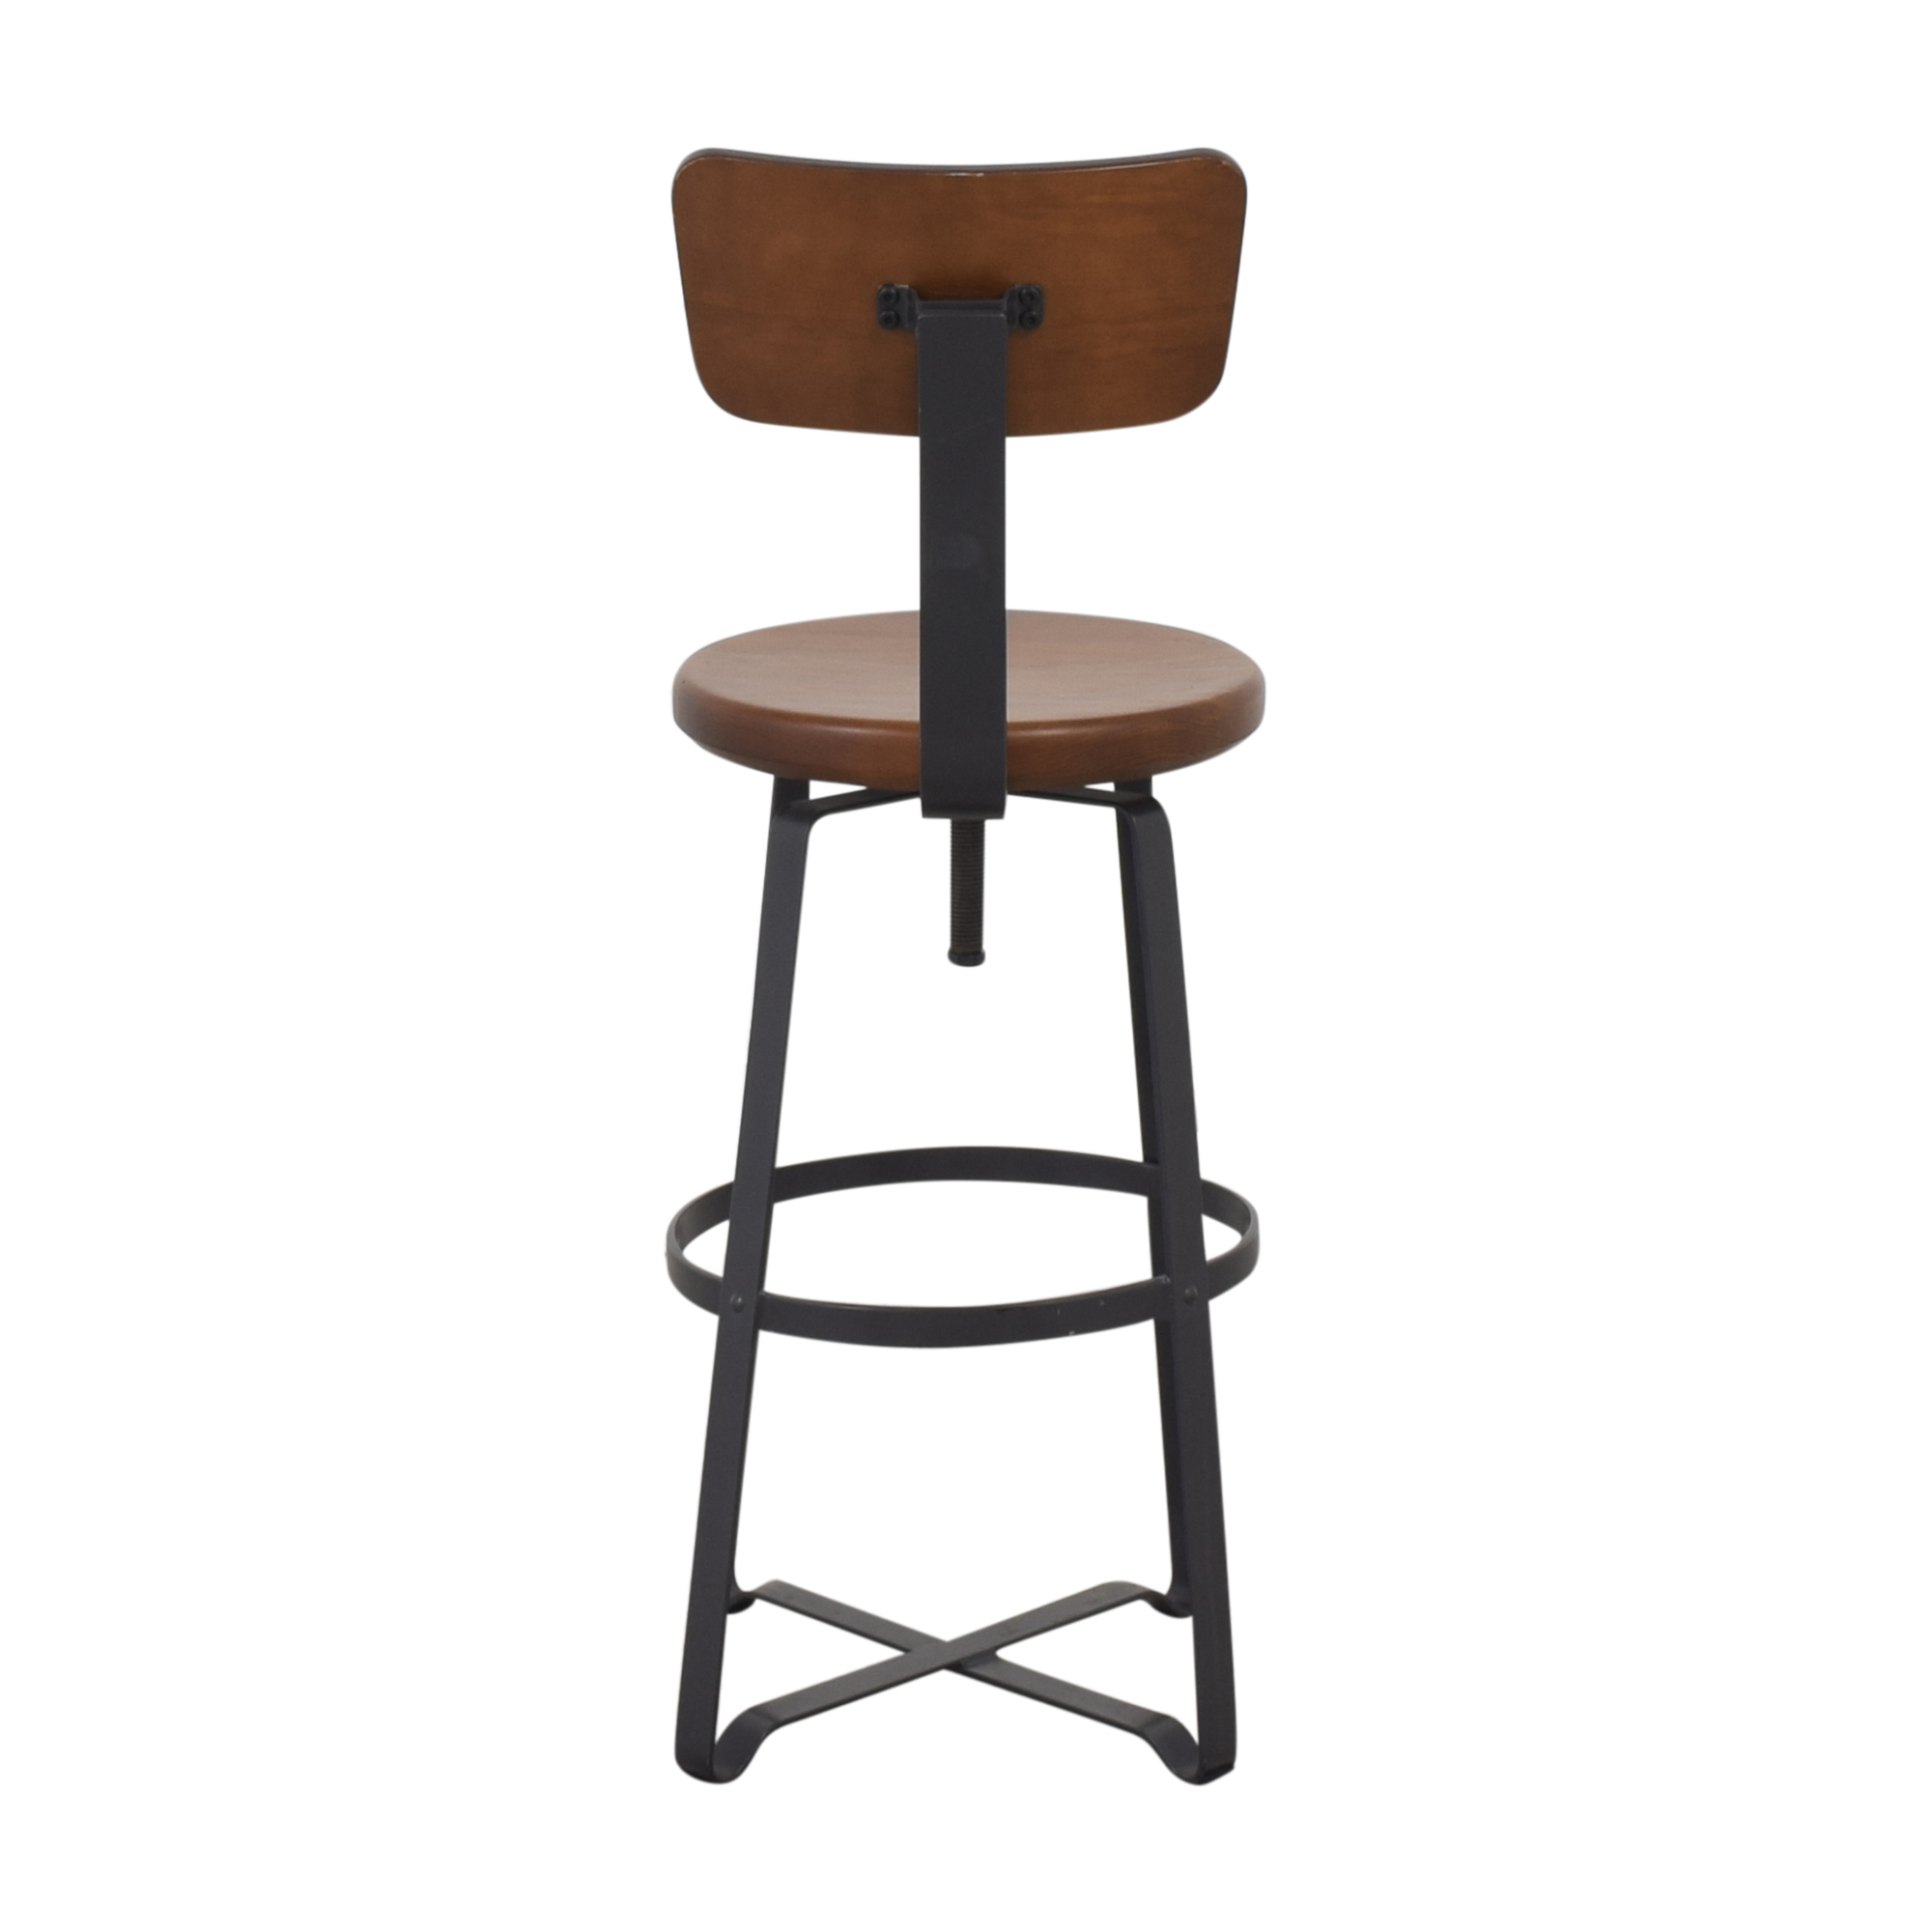 West Elm West Elm Adjustable Industrial Stool with Back ct